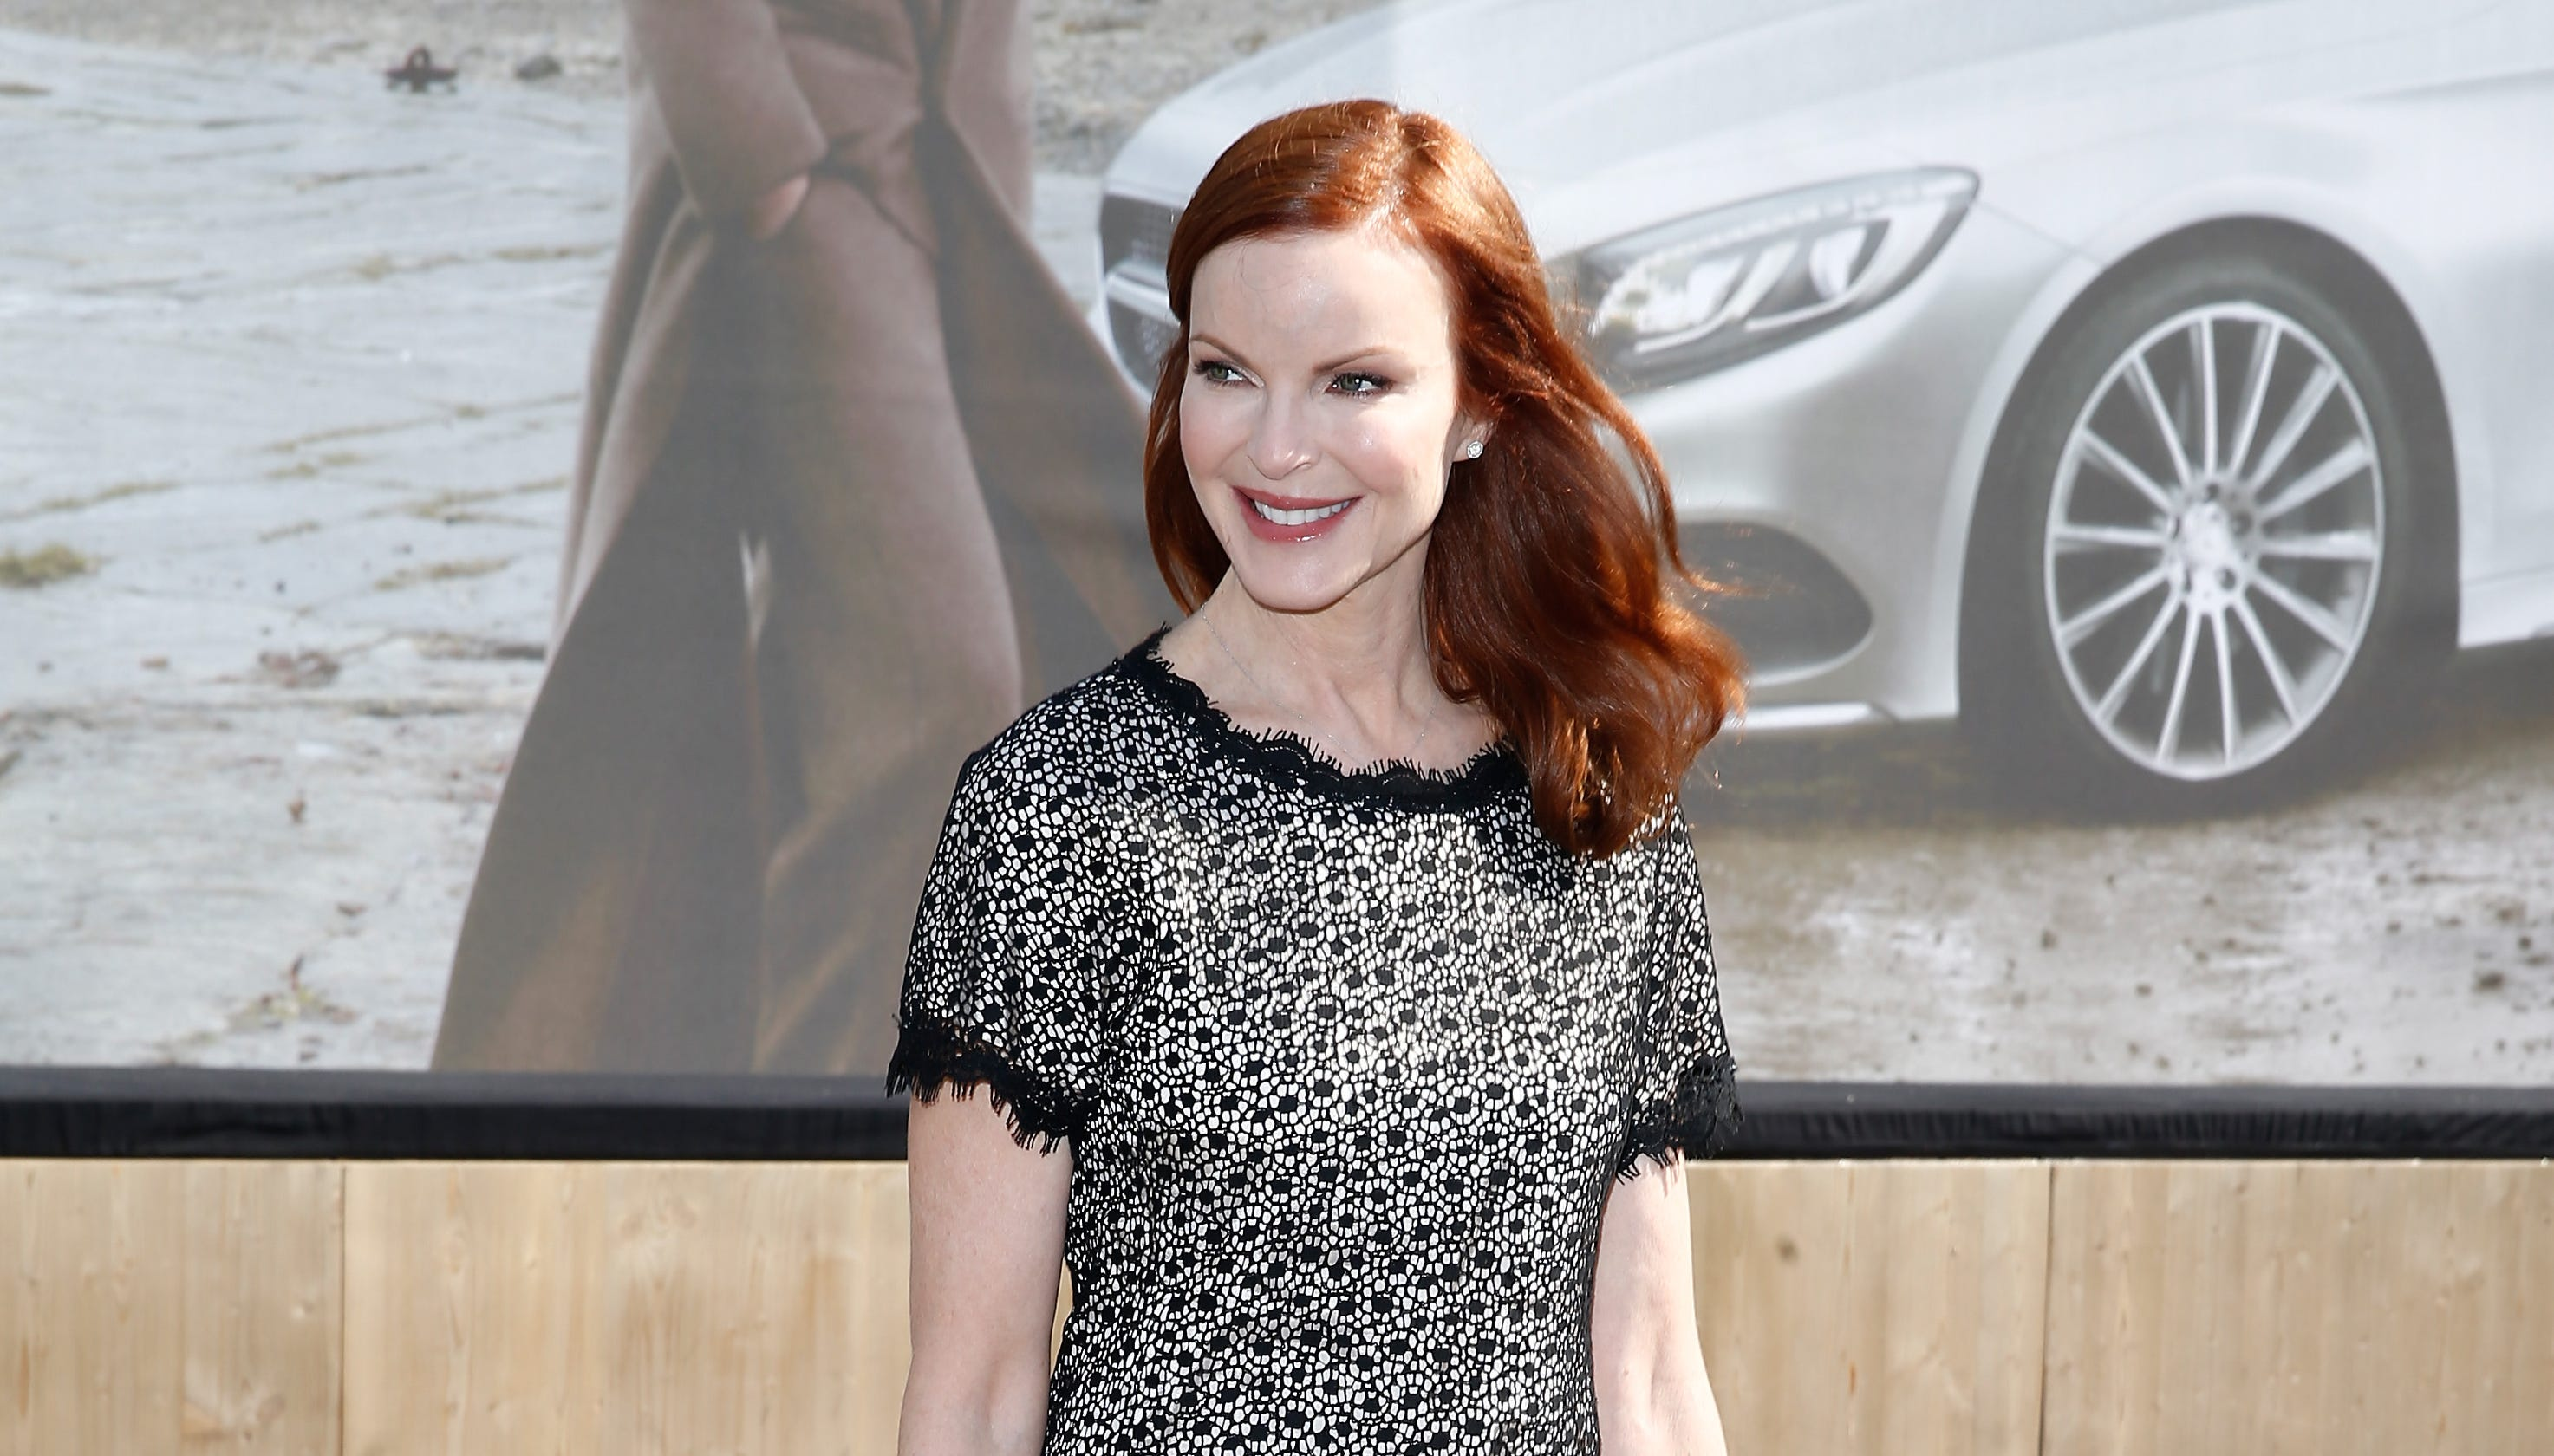 HPV link to anal cancer gets renewed attention thanks to Marcia Cross